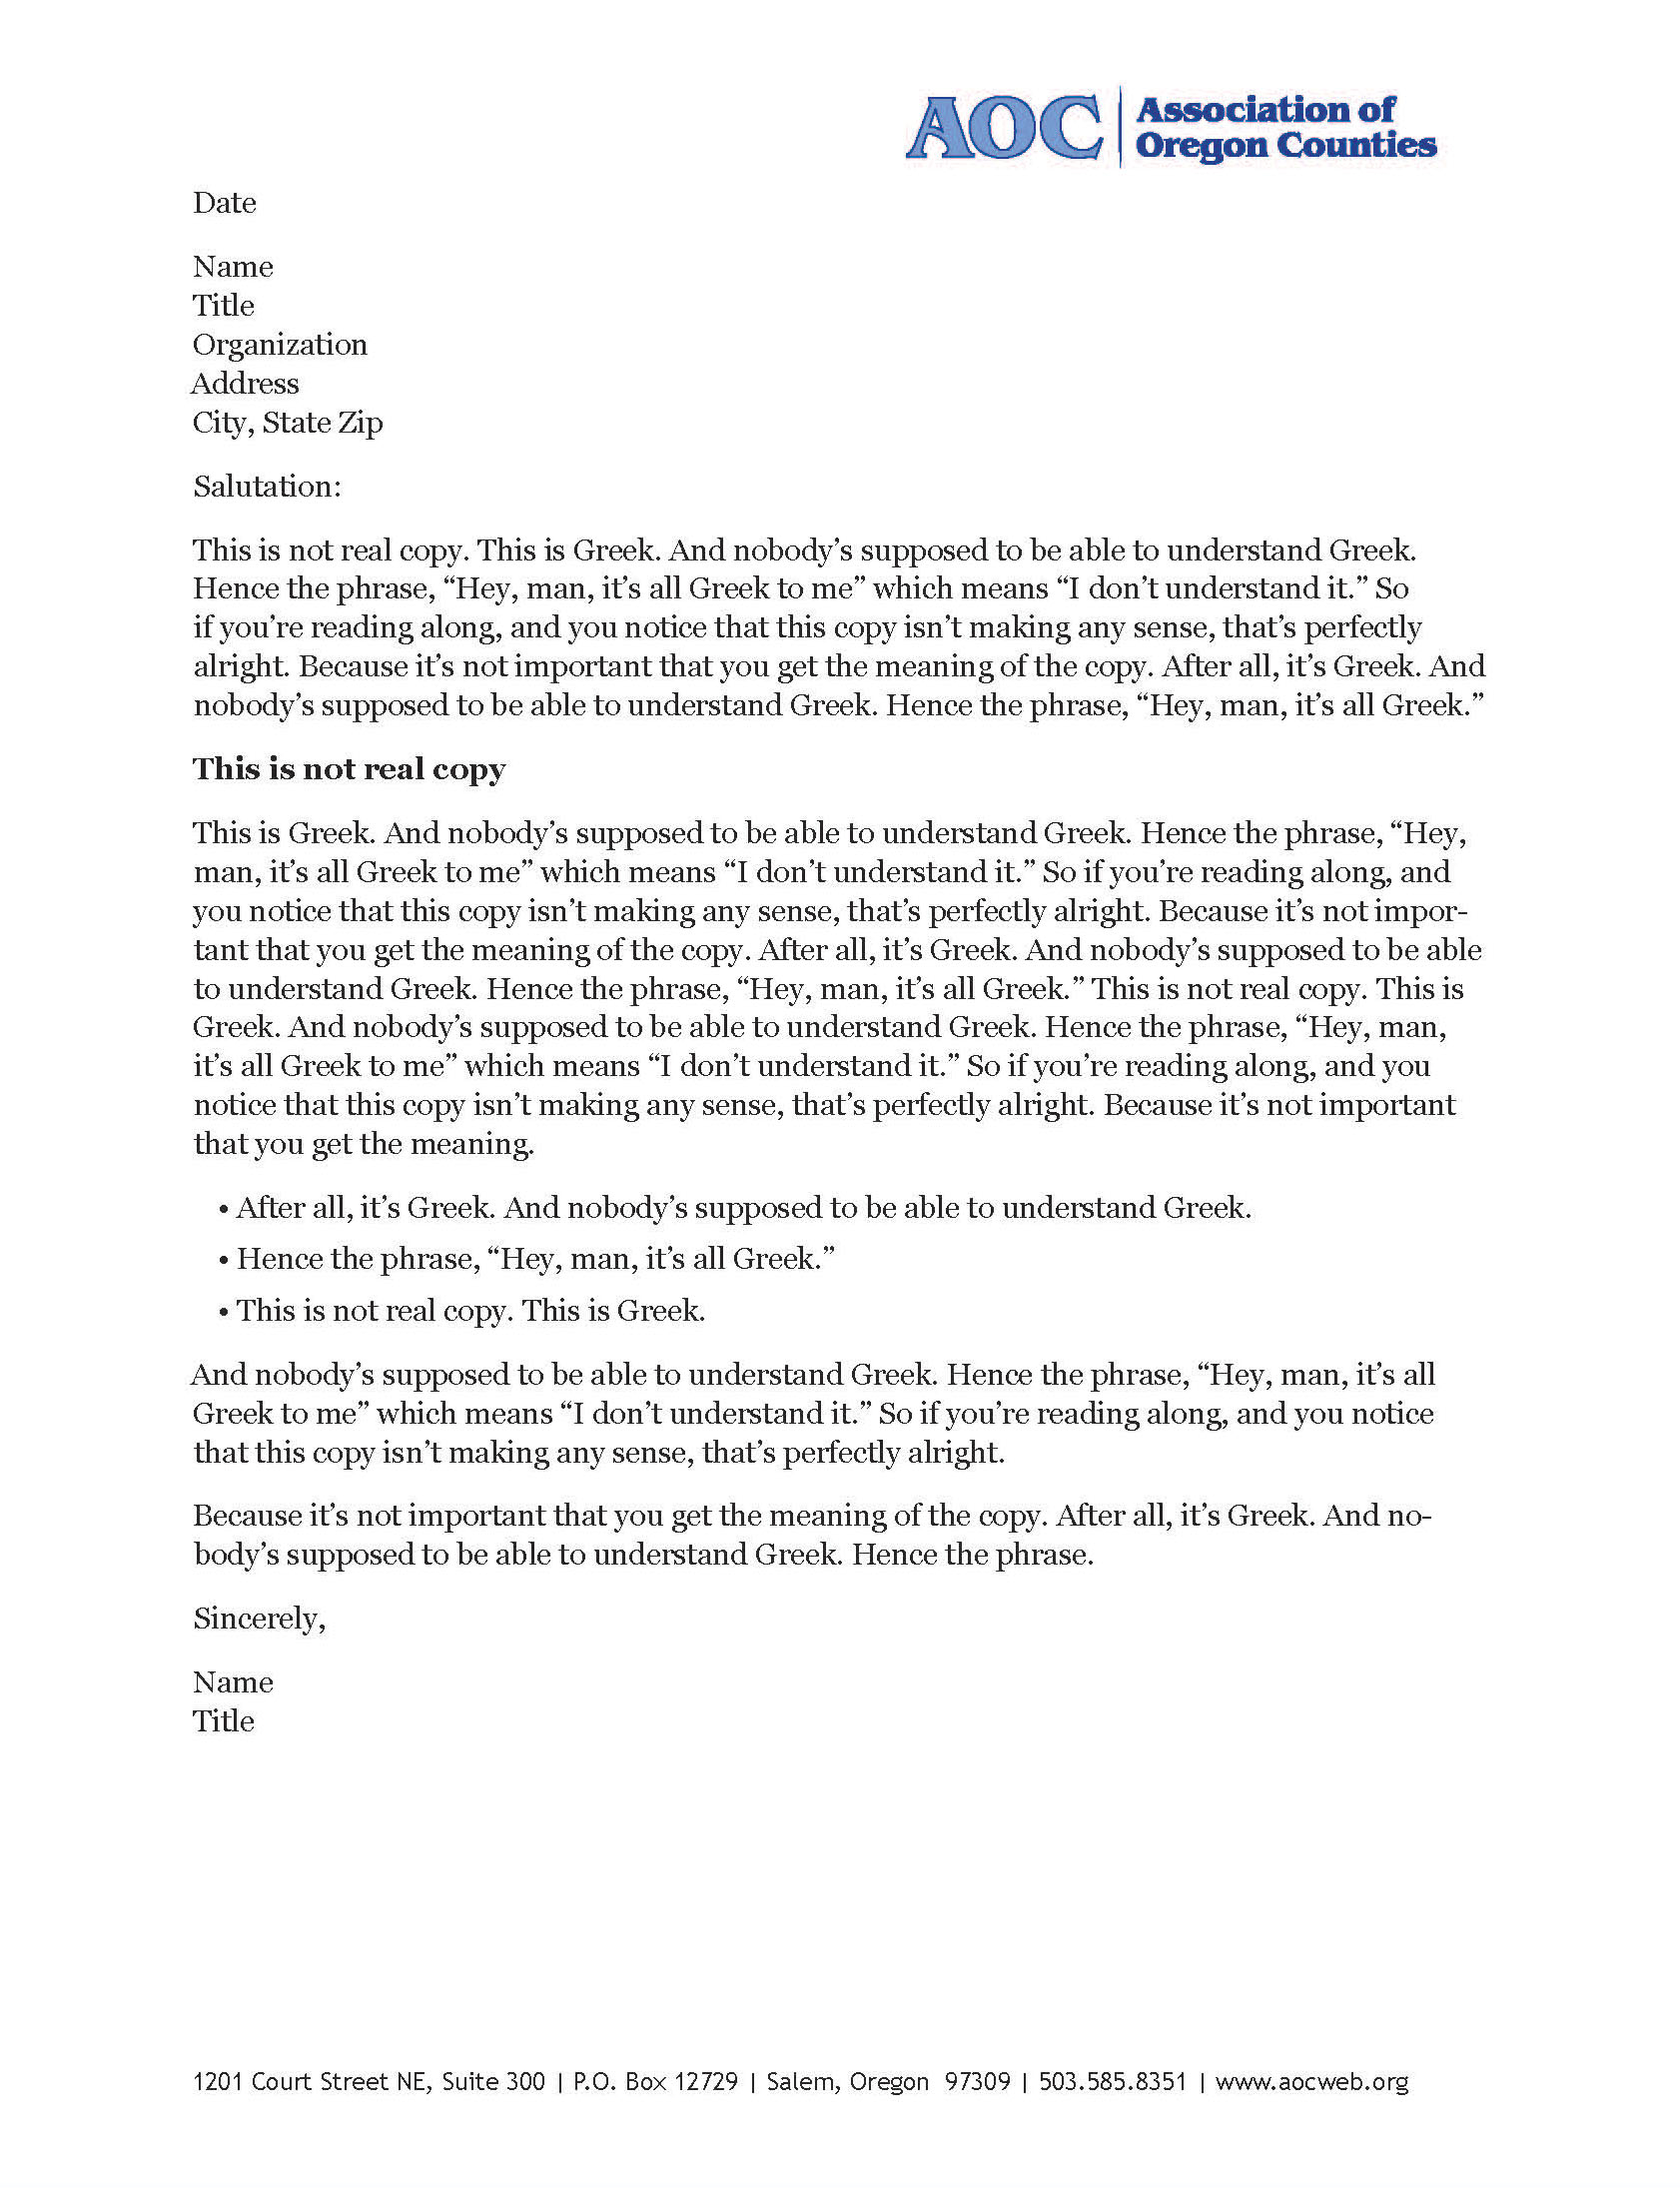 Letterhead templates how to in word optimize my brand creative first whats included in the letterhead template wajeb Gallery